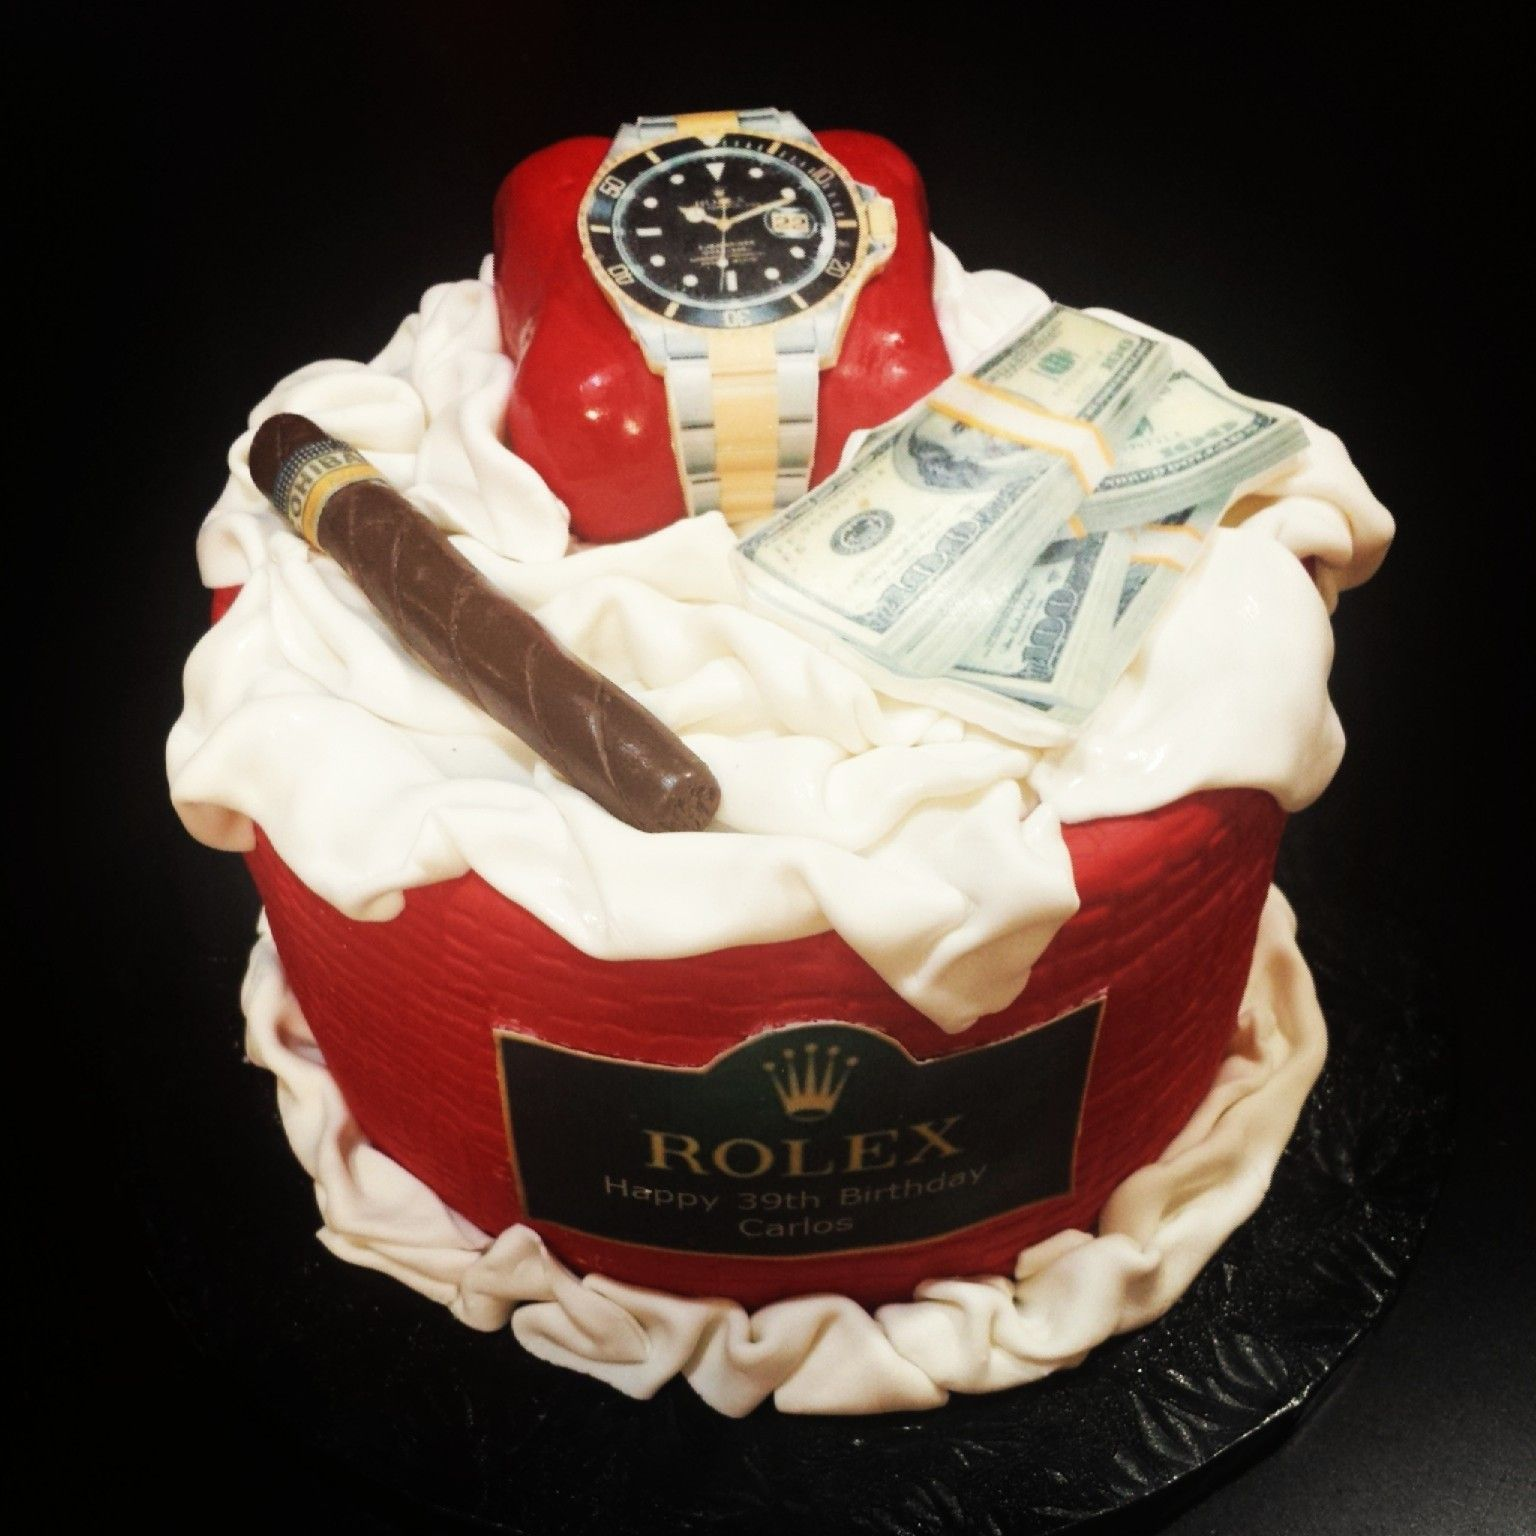 Rolex Cakeperfect Gift For Your Fatherbrotherhusbandboyfriend